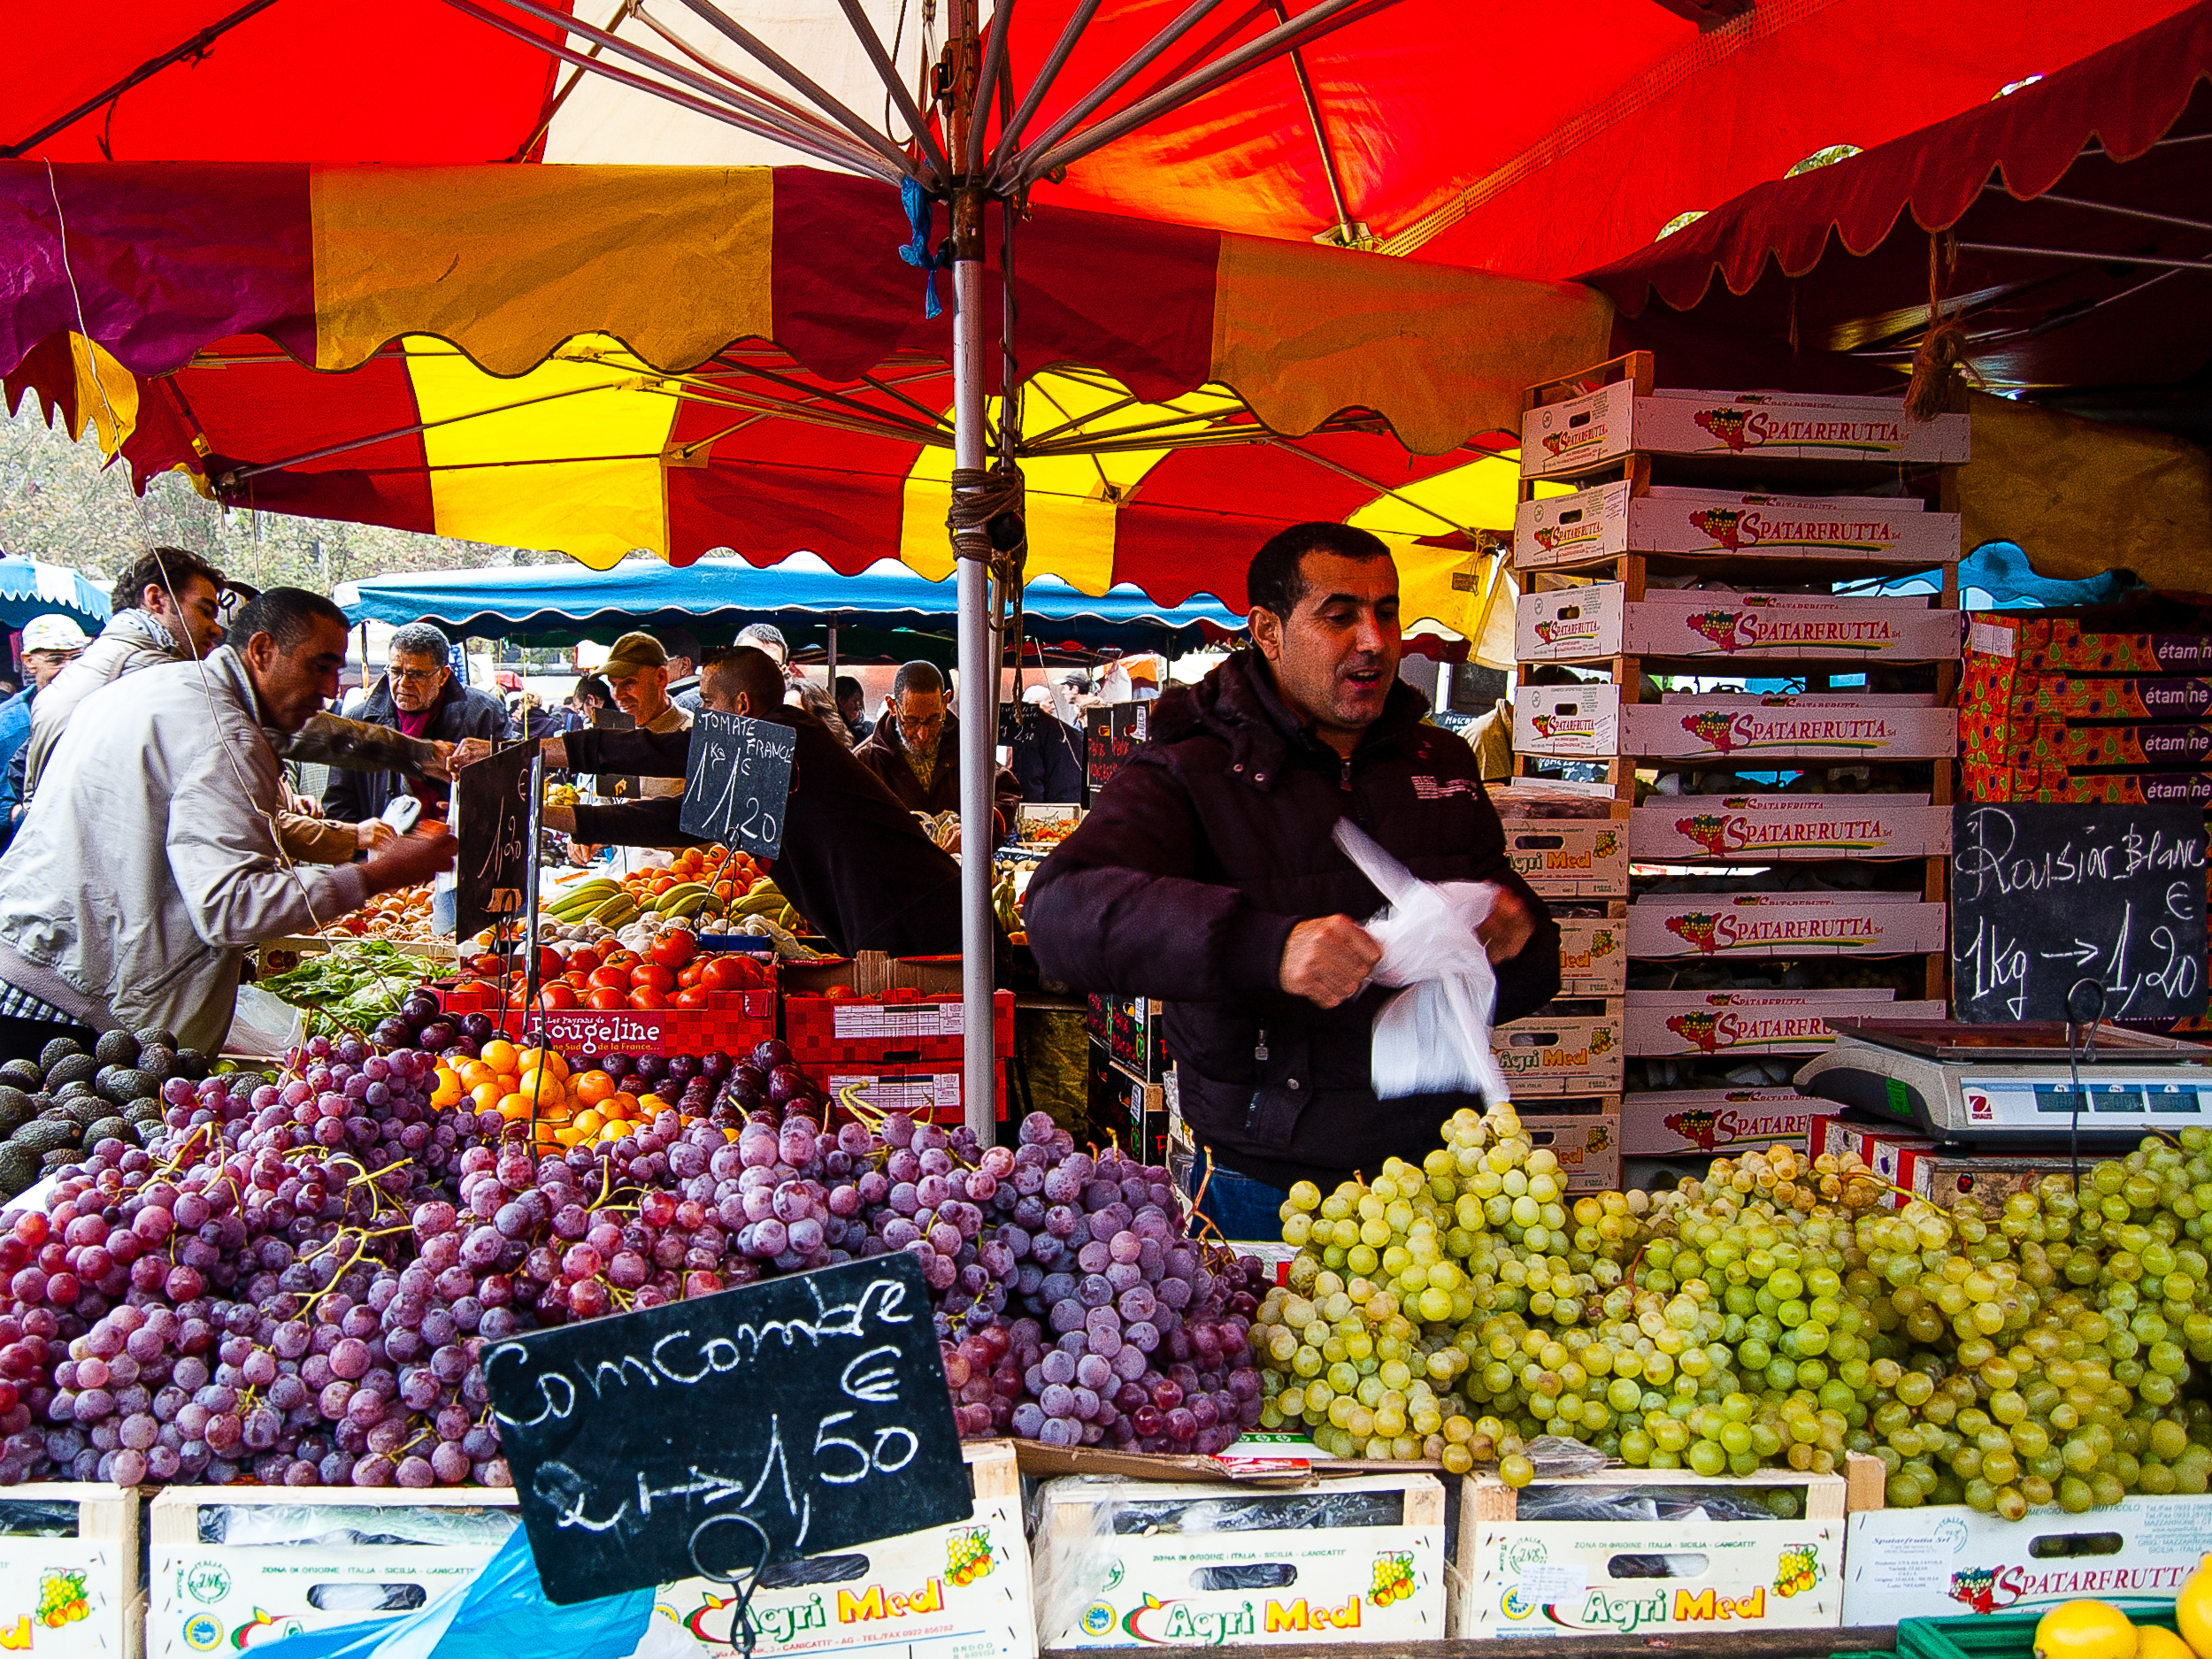 Lille is home to the largest market in all of France, the Marché de Wazemmes.